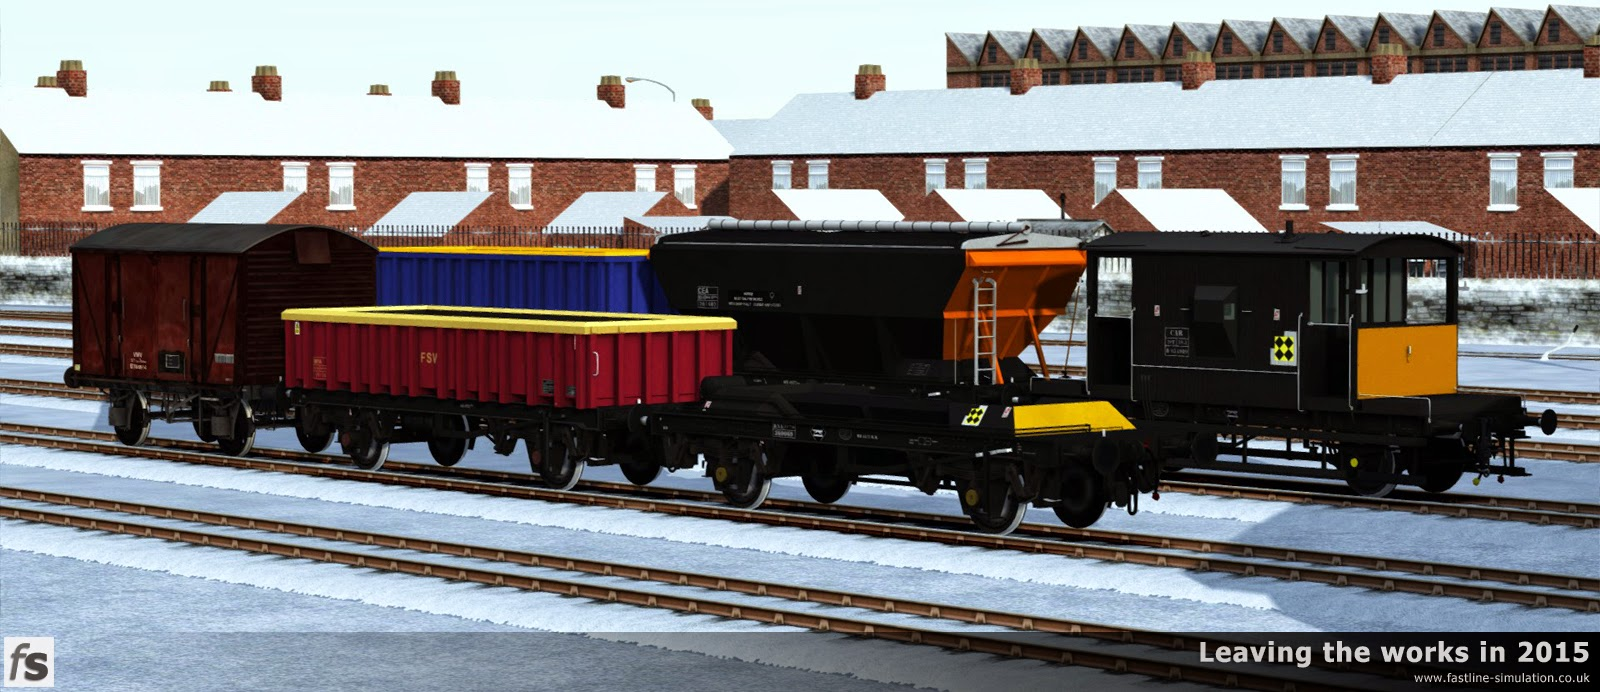 Fastline Simulation: The snow quietly covers the ground as the works shuts down for Christmas, while some of the rolling stock due to leave the works in 2015 waits to be dispatched.